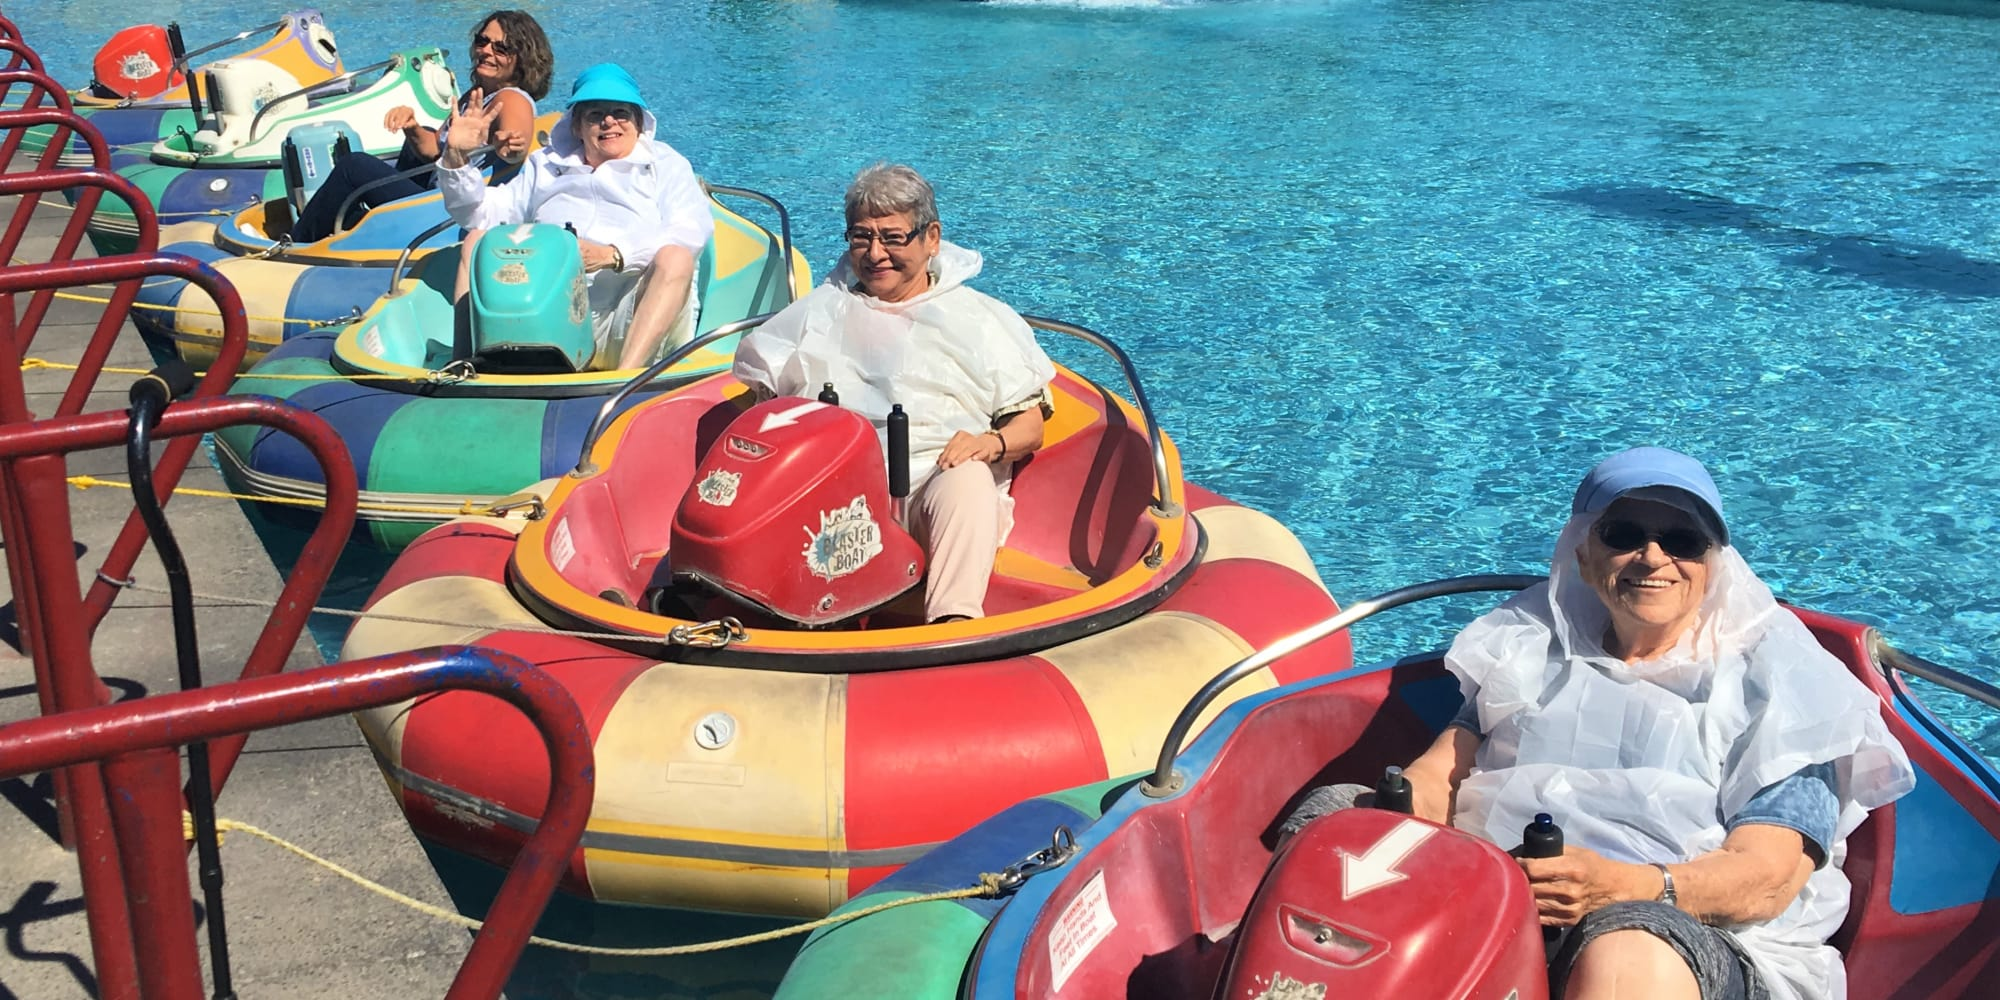 A group of residents from Linwood Estates Gracious Retirement Living in Lawrenceville, Georgia on a water ride